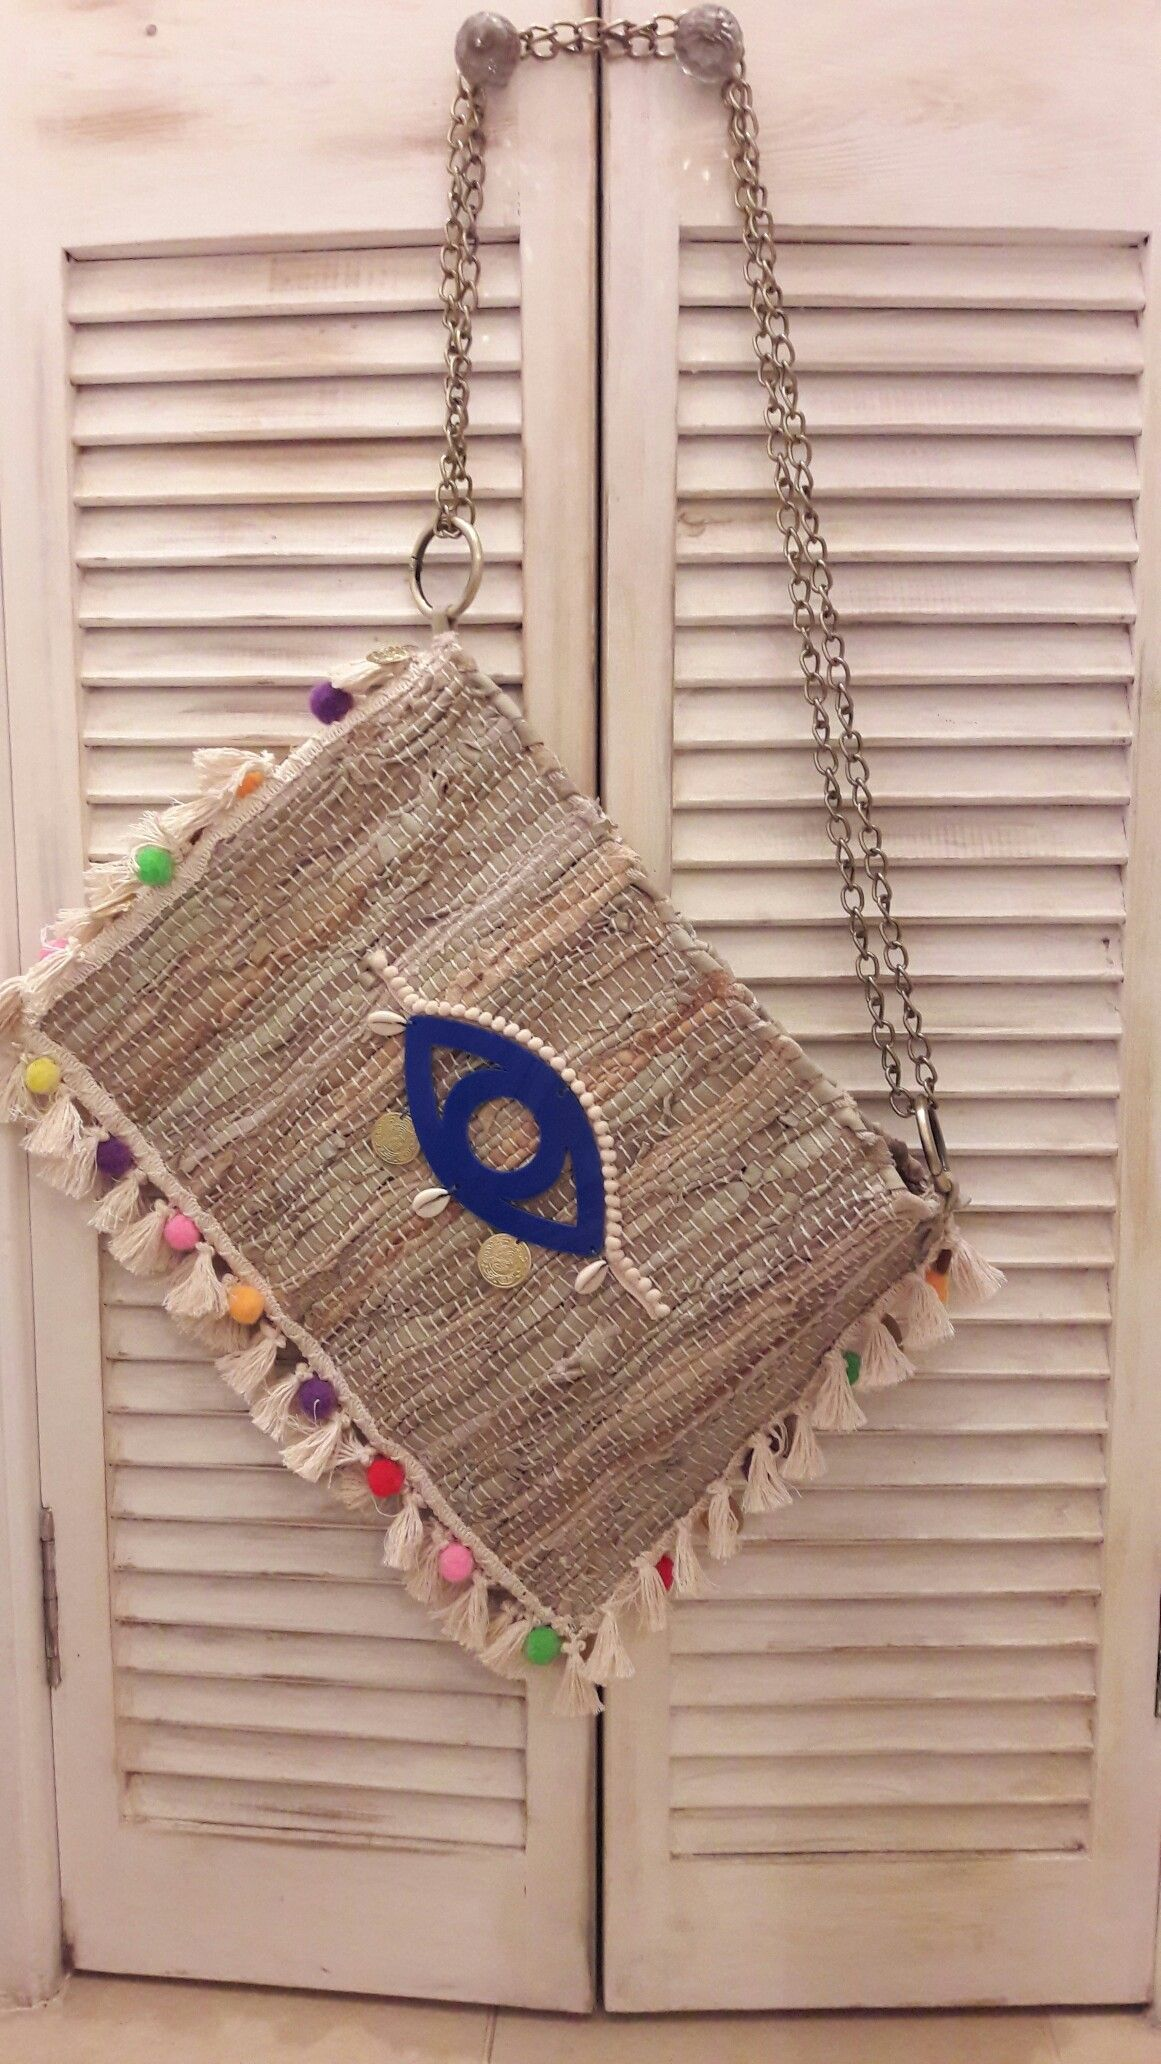 Middle Eastern Art, Evil Eye Jewelry, Boho Bags, Things To Sell, Mood 9aeb57e7f5